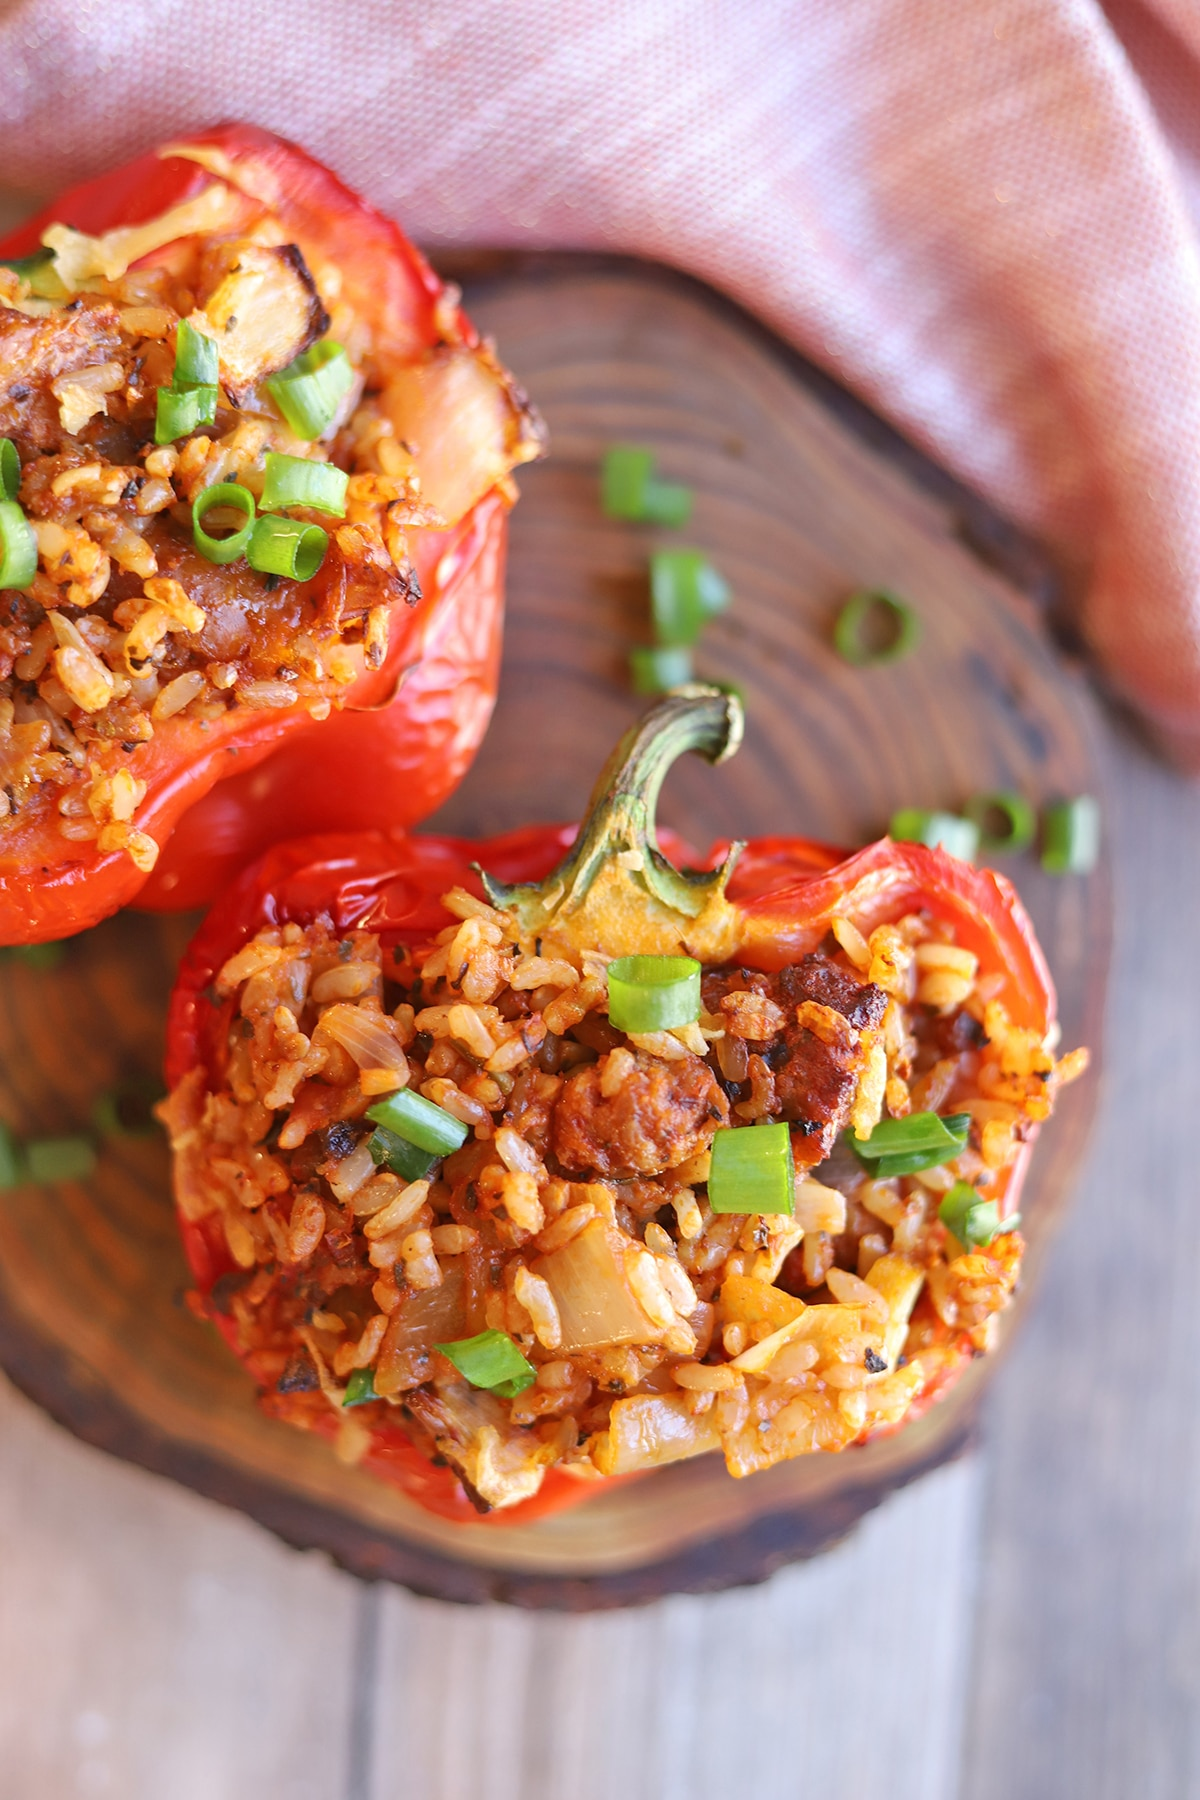 Bell pepper halves on cutting board, stuffed with rice, sausage, onions, and garlic.